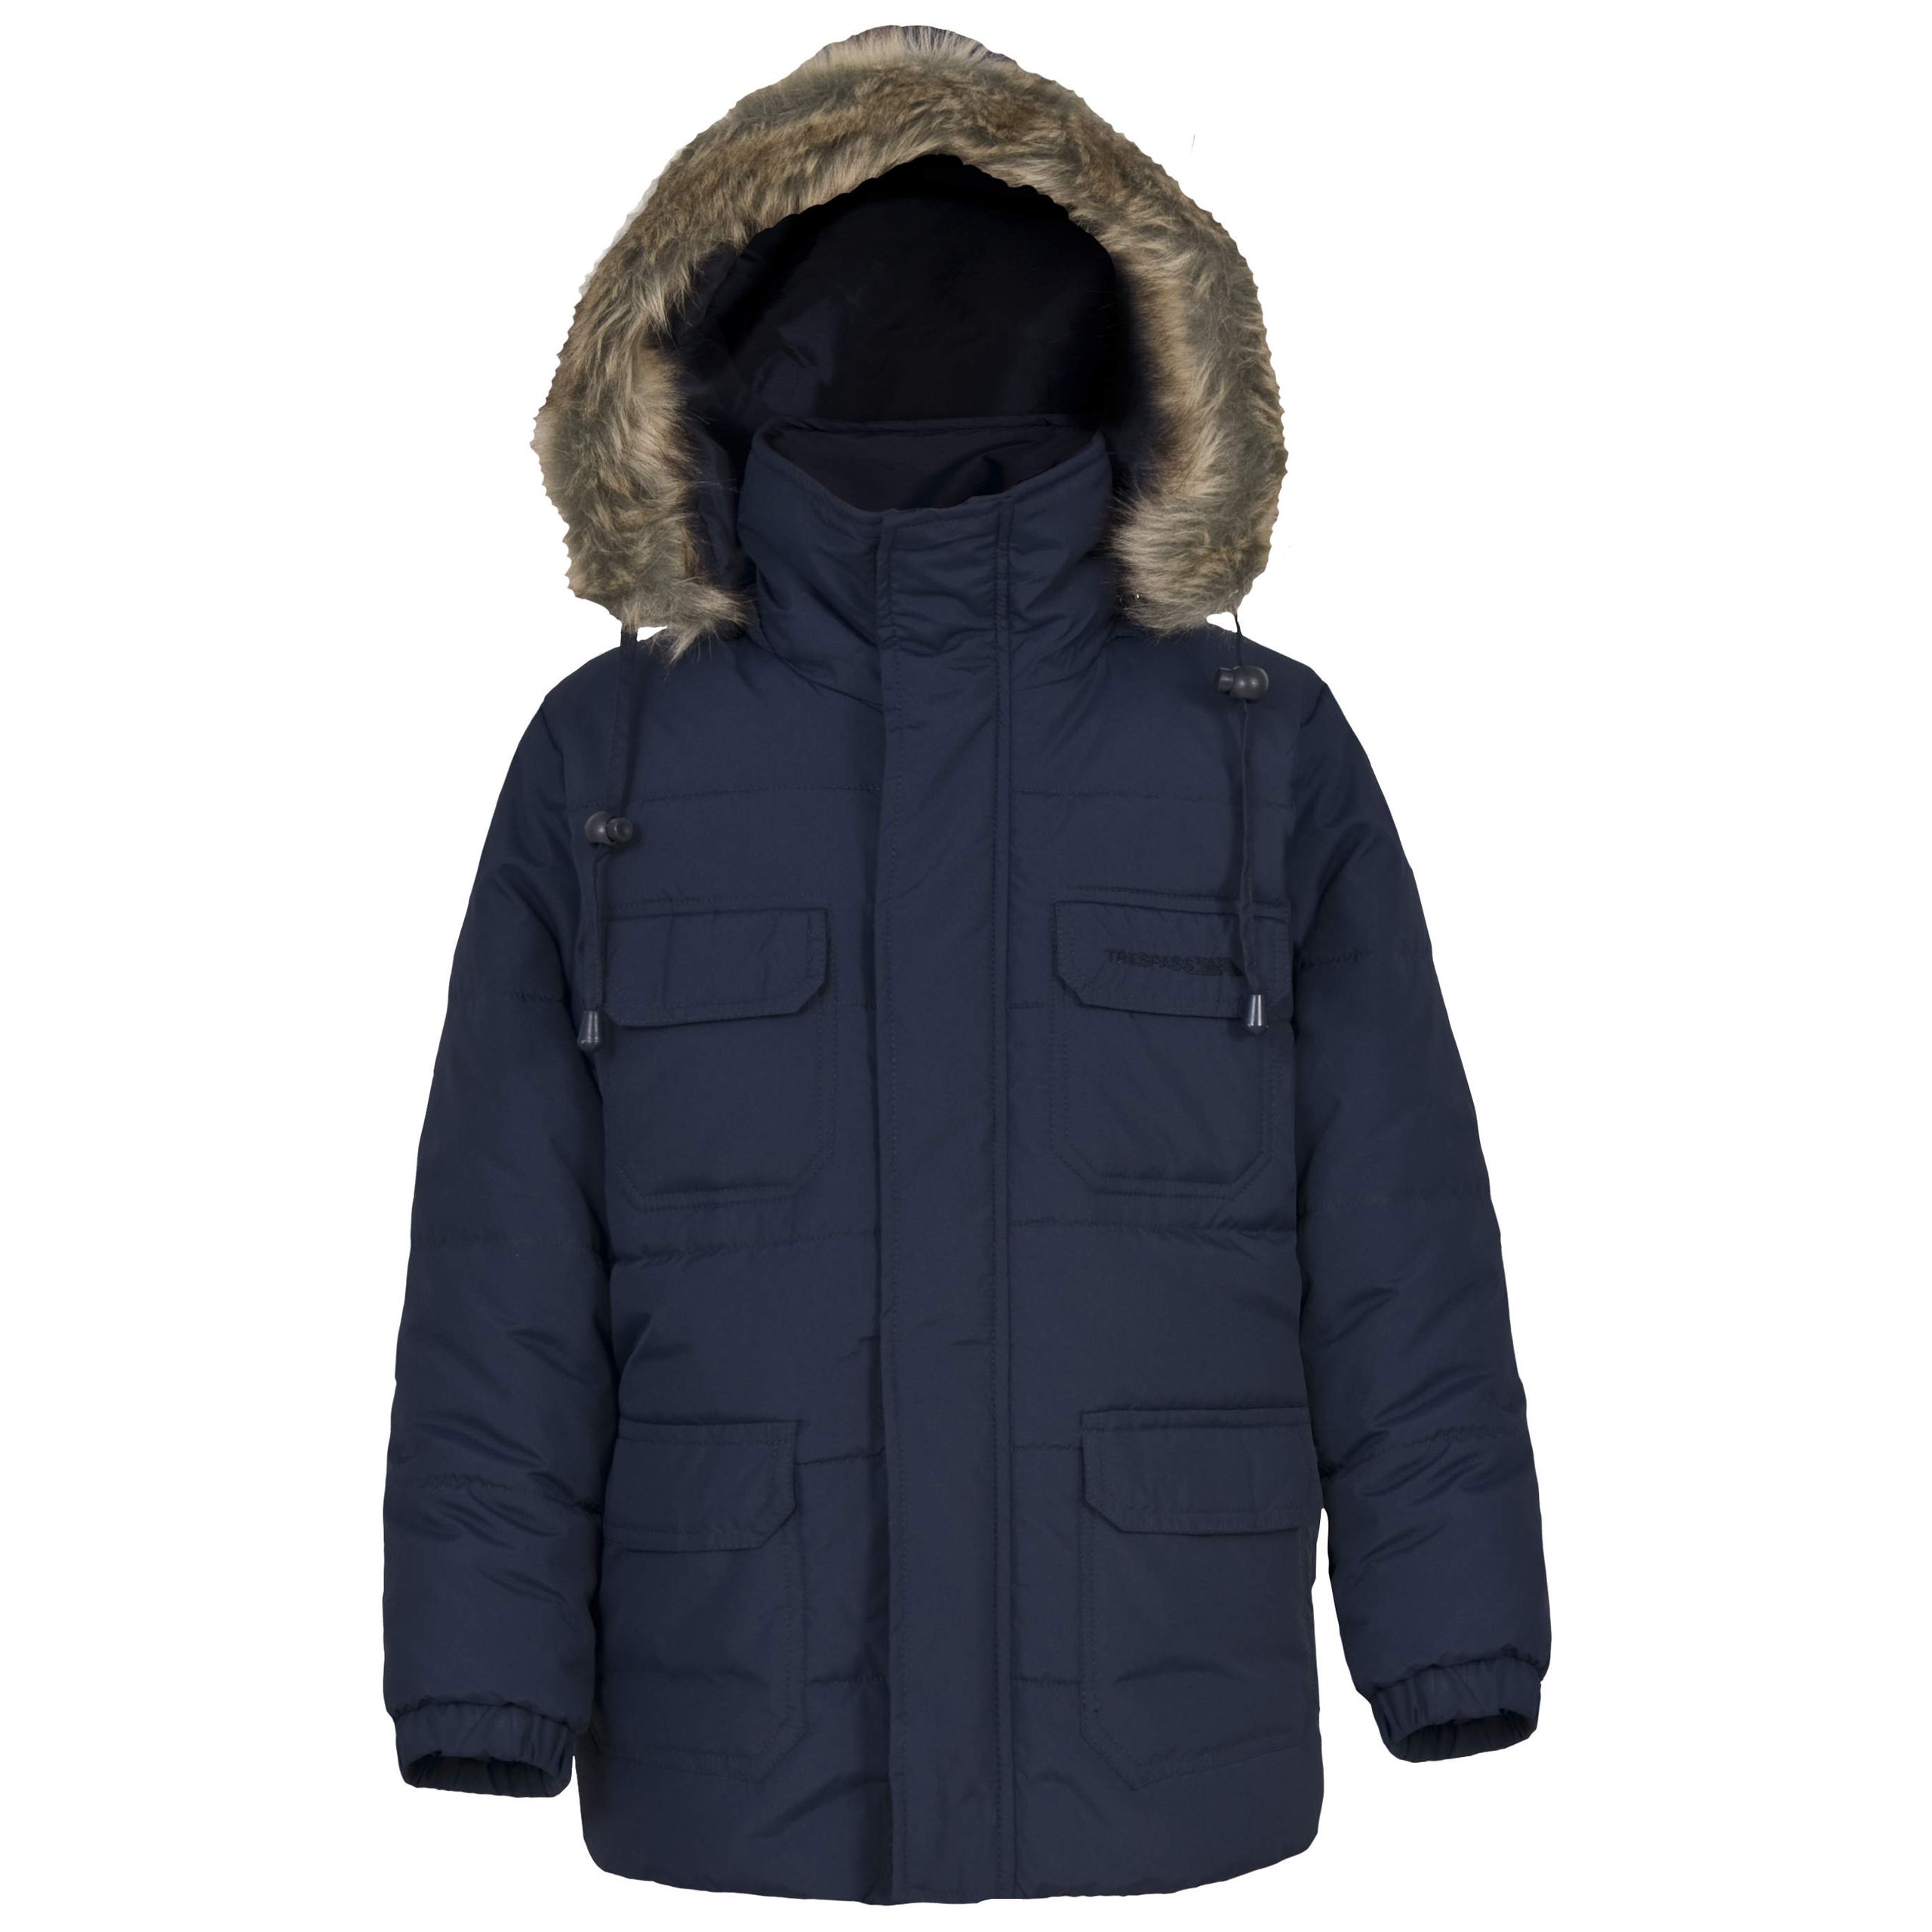 Toddler boy jackets from OshKosh are comfy, snug & warm. Get free shipping on all heavy coats & jackets for toddler boys.